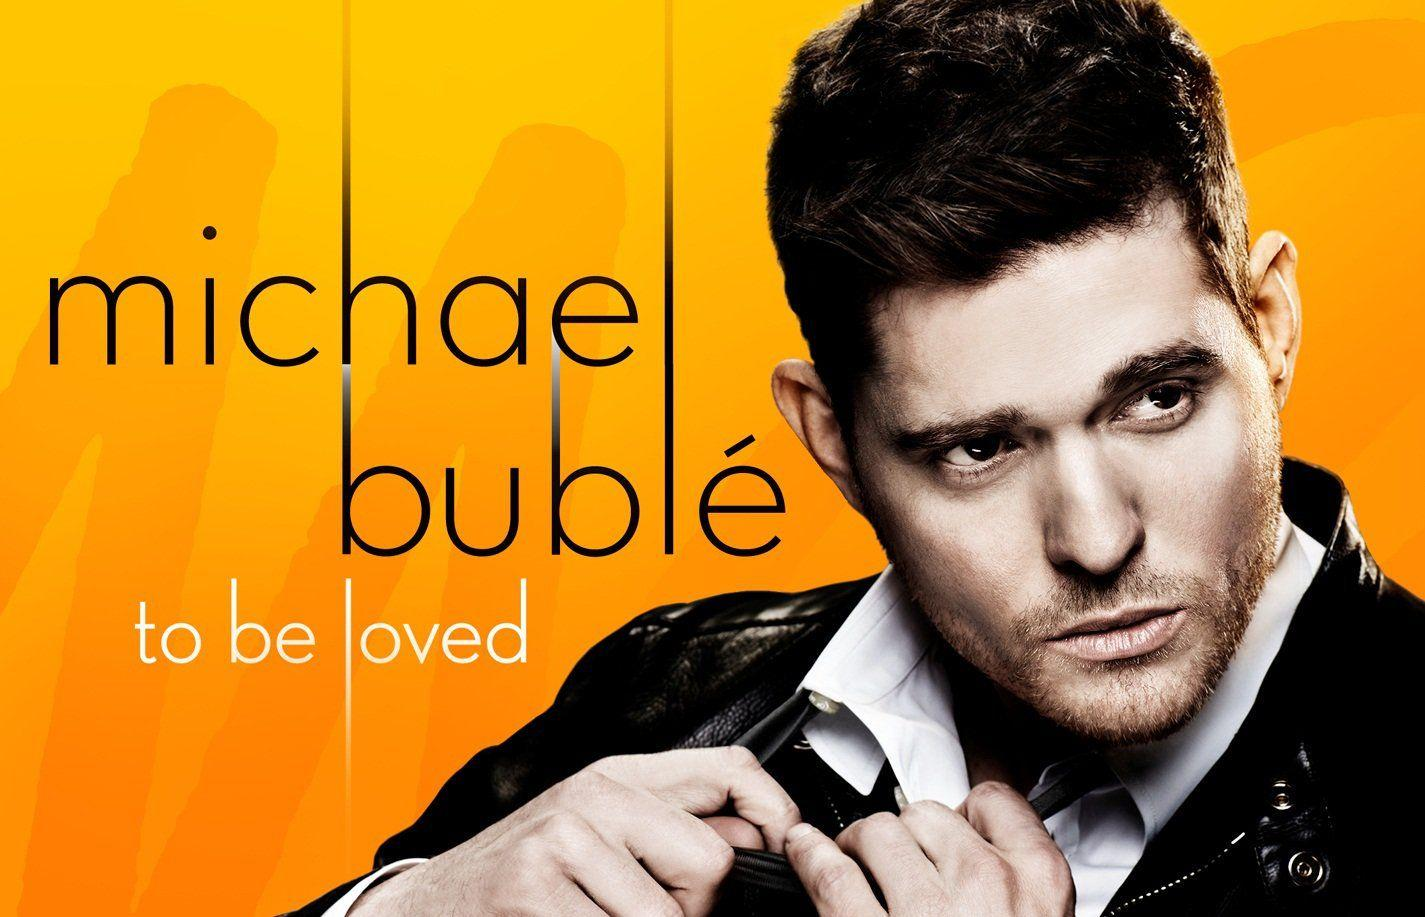 Michael Buble Tour – Michael Buble Tour News, Tour Dates, How to